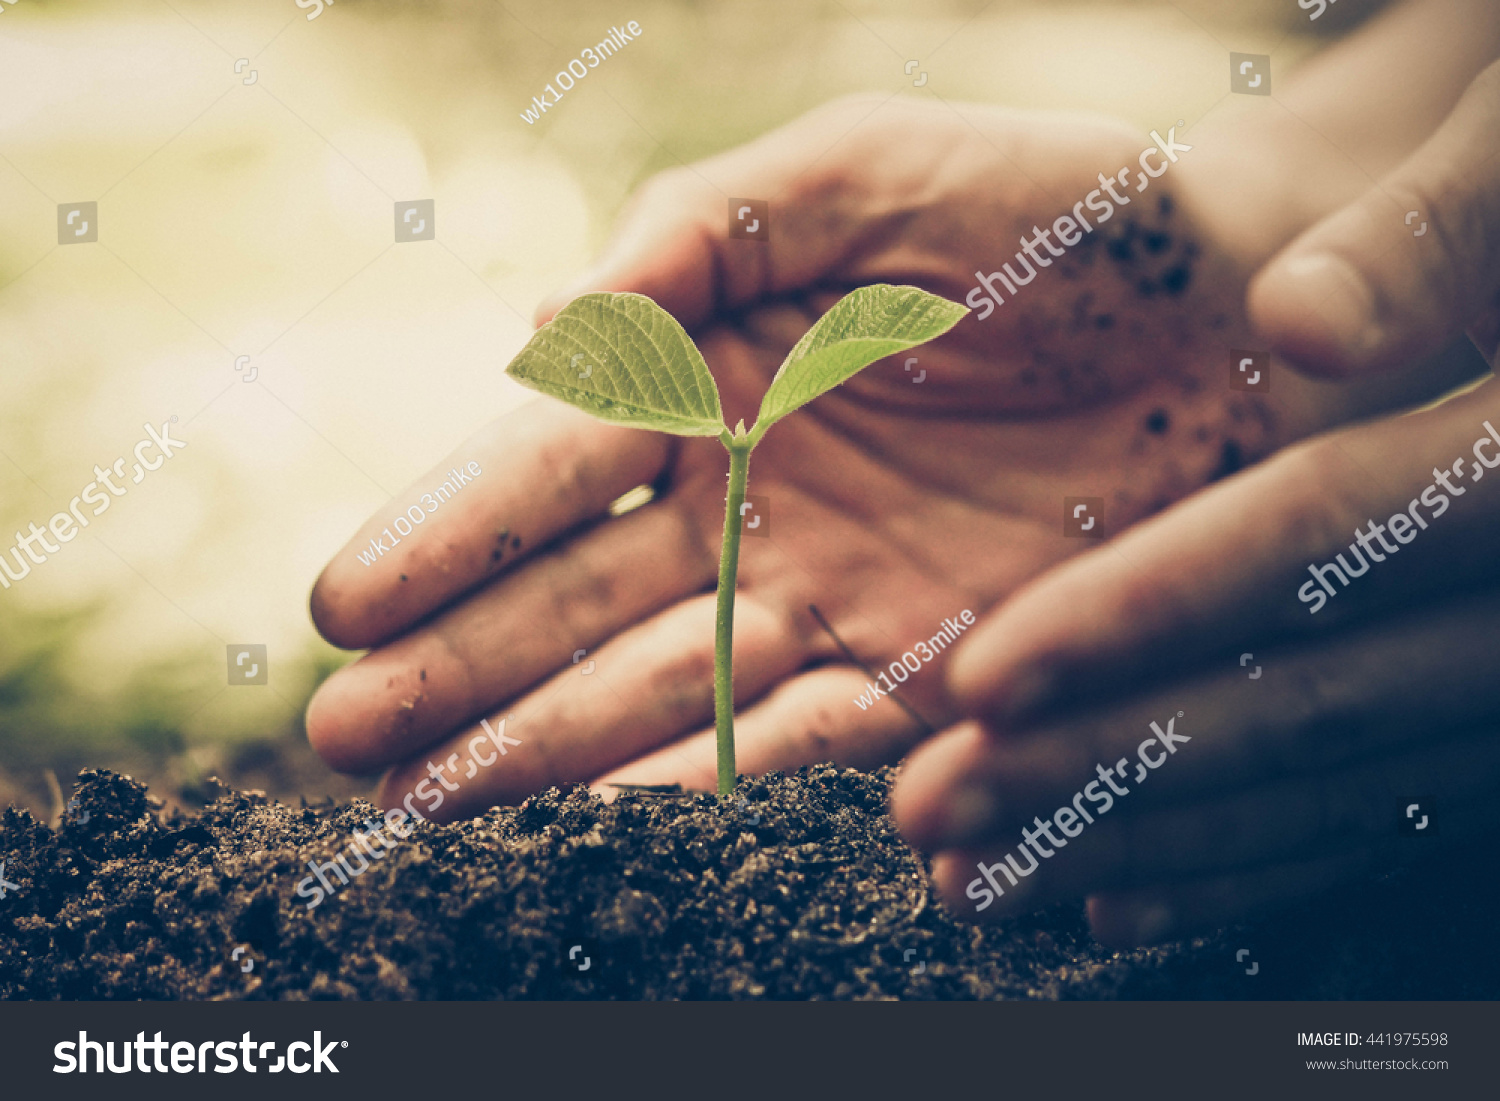 Hands farmer growing nurturing tree growing for Soil and green